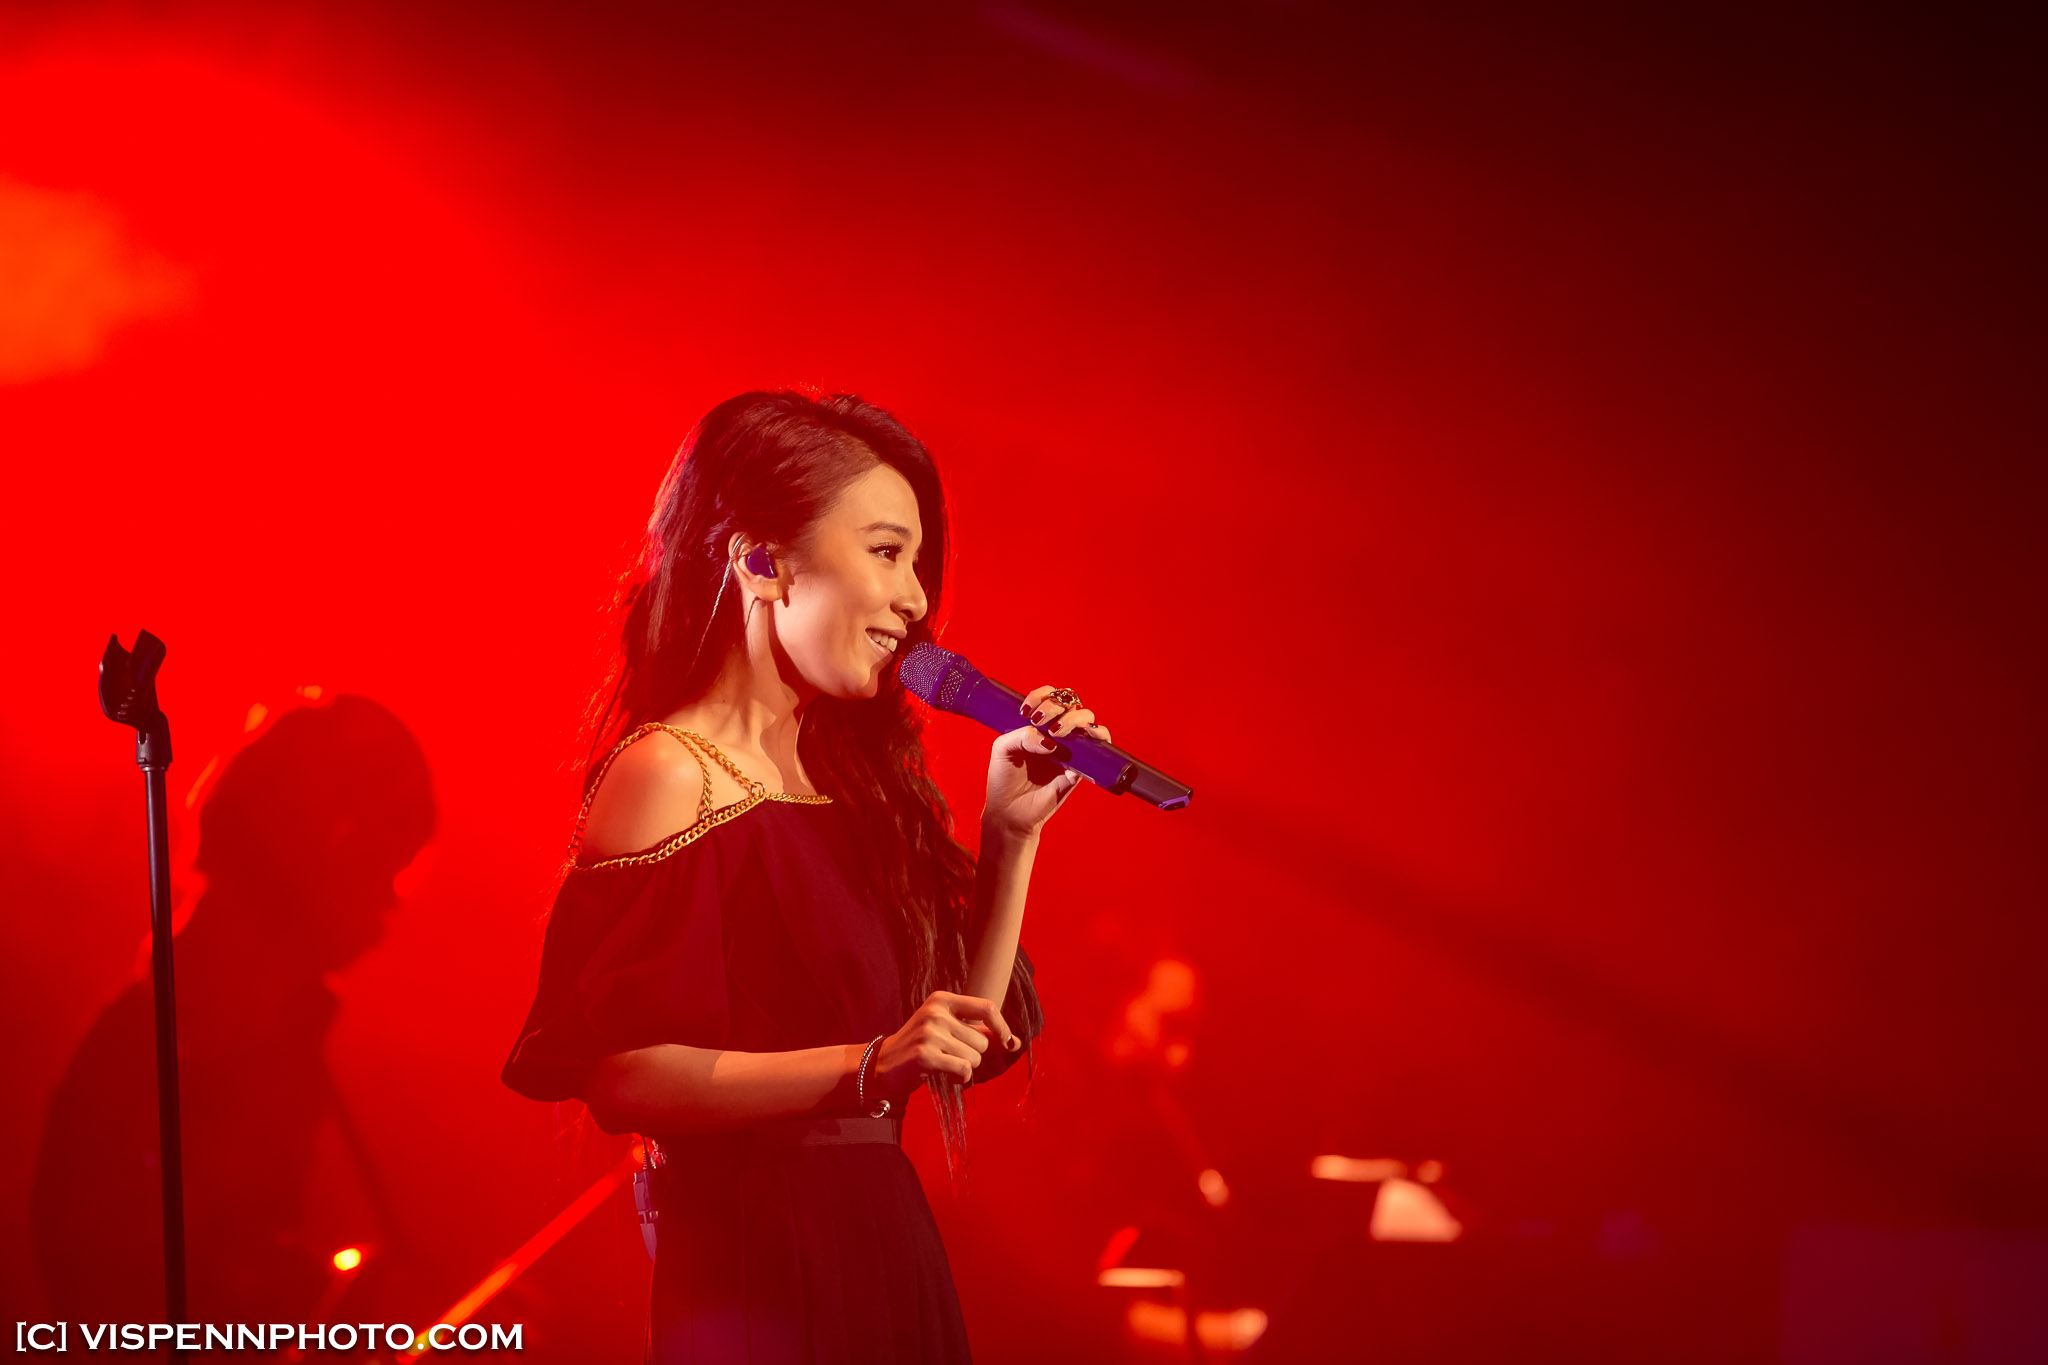 Melbourne CONCERTS Photography 墨尔本 演唱会 照片 摄影师 VISPENN 5D3 1424